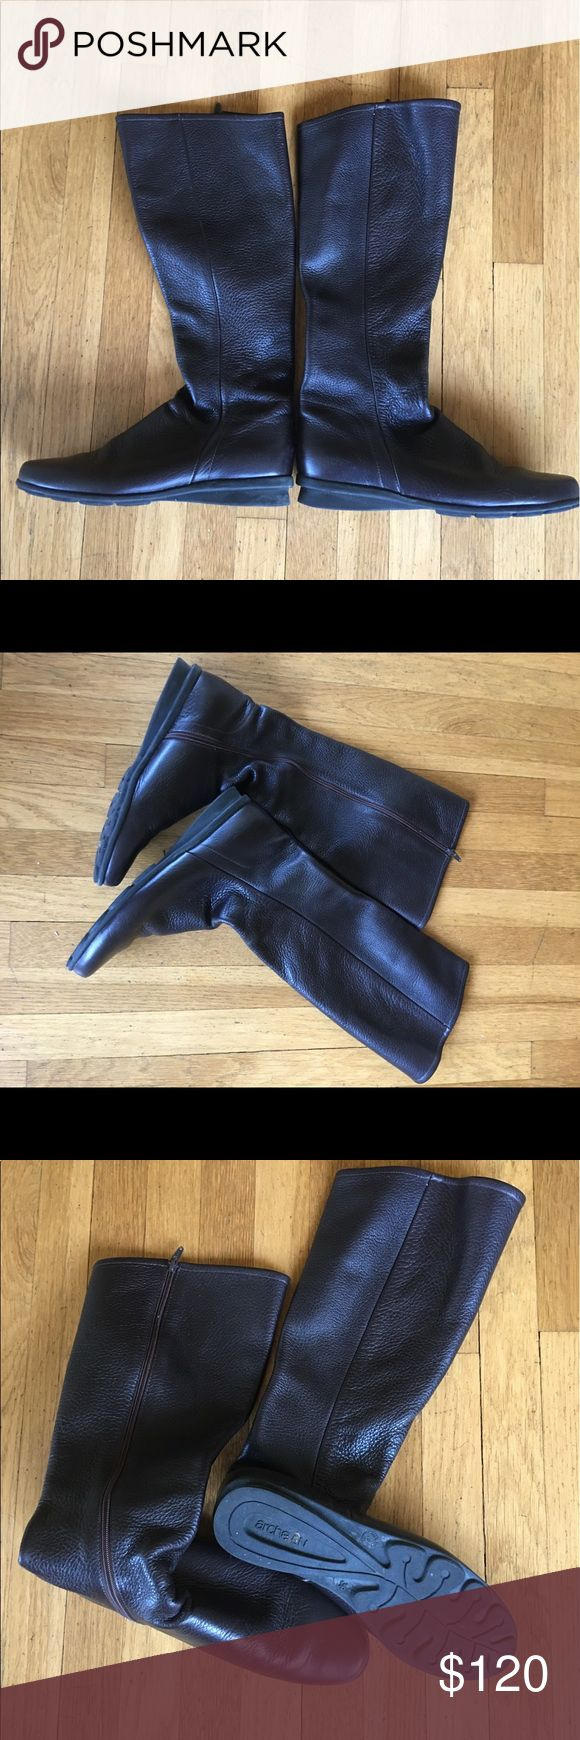 Arche Boots Arche Boots. Very soft leather, made in France comfortable, can be dressy or casual Boots. Size is too big. NO BOX arche Shoes Winter & Rain Boots